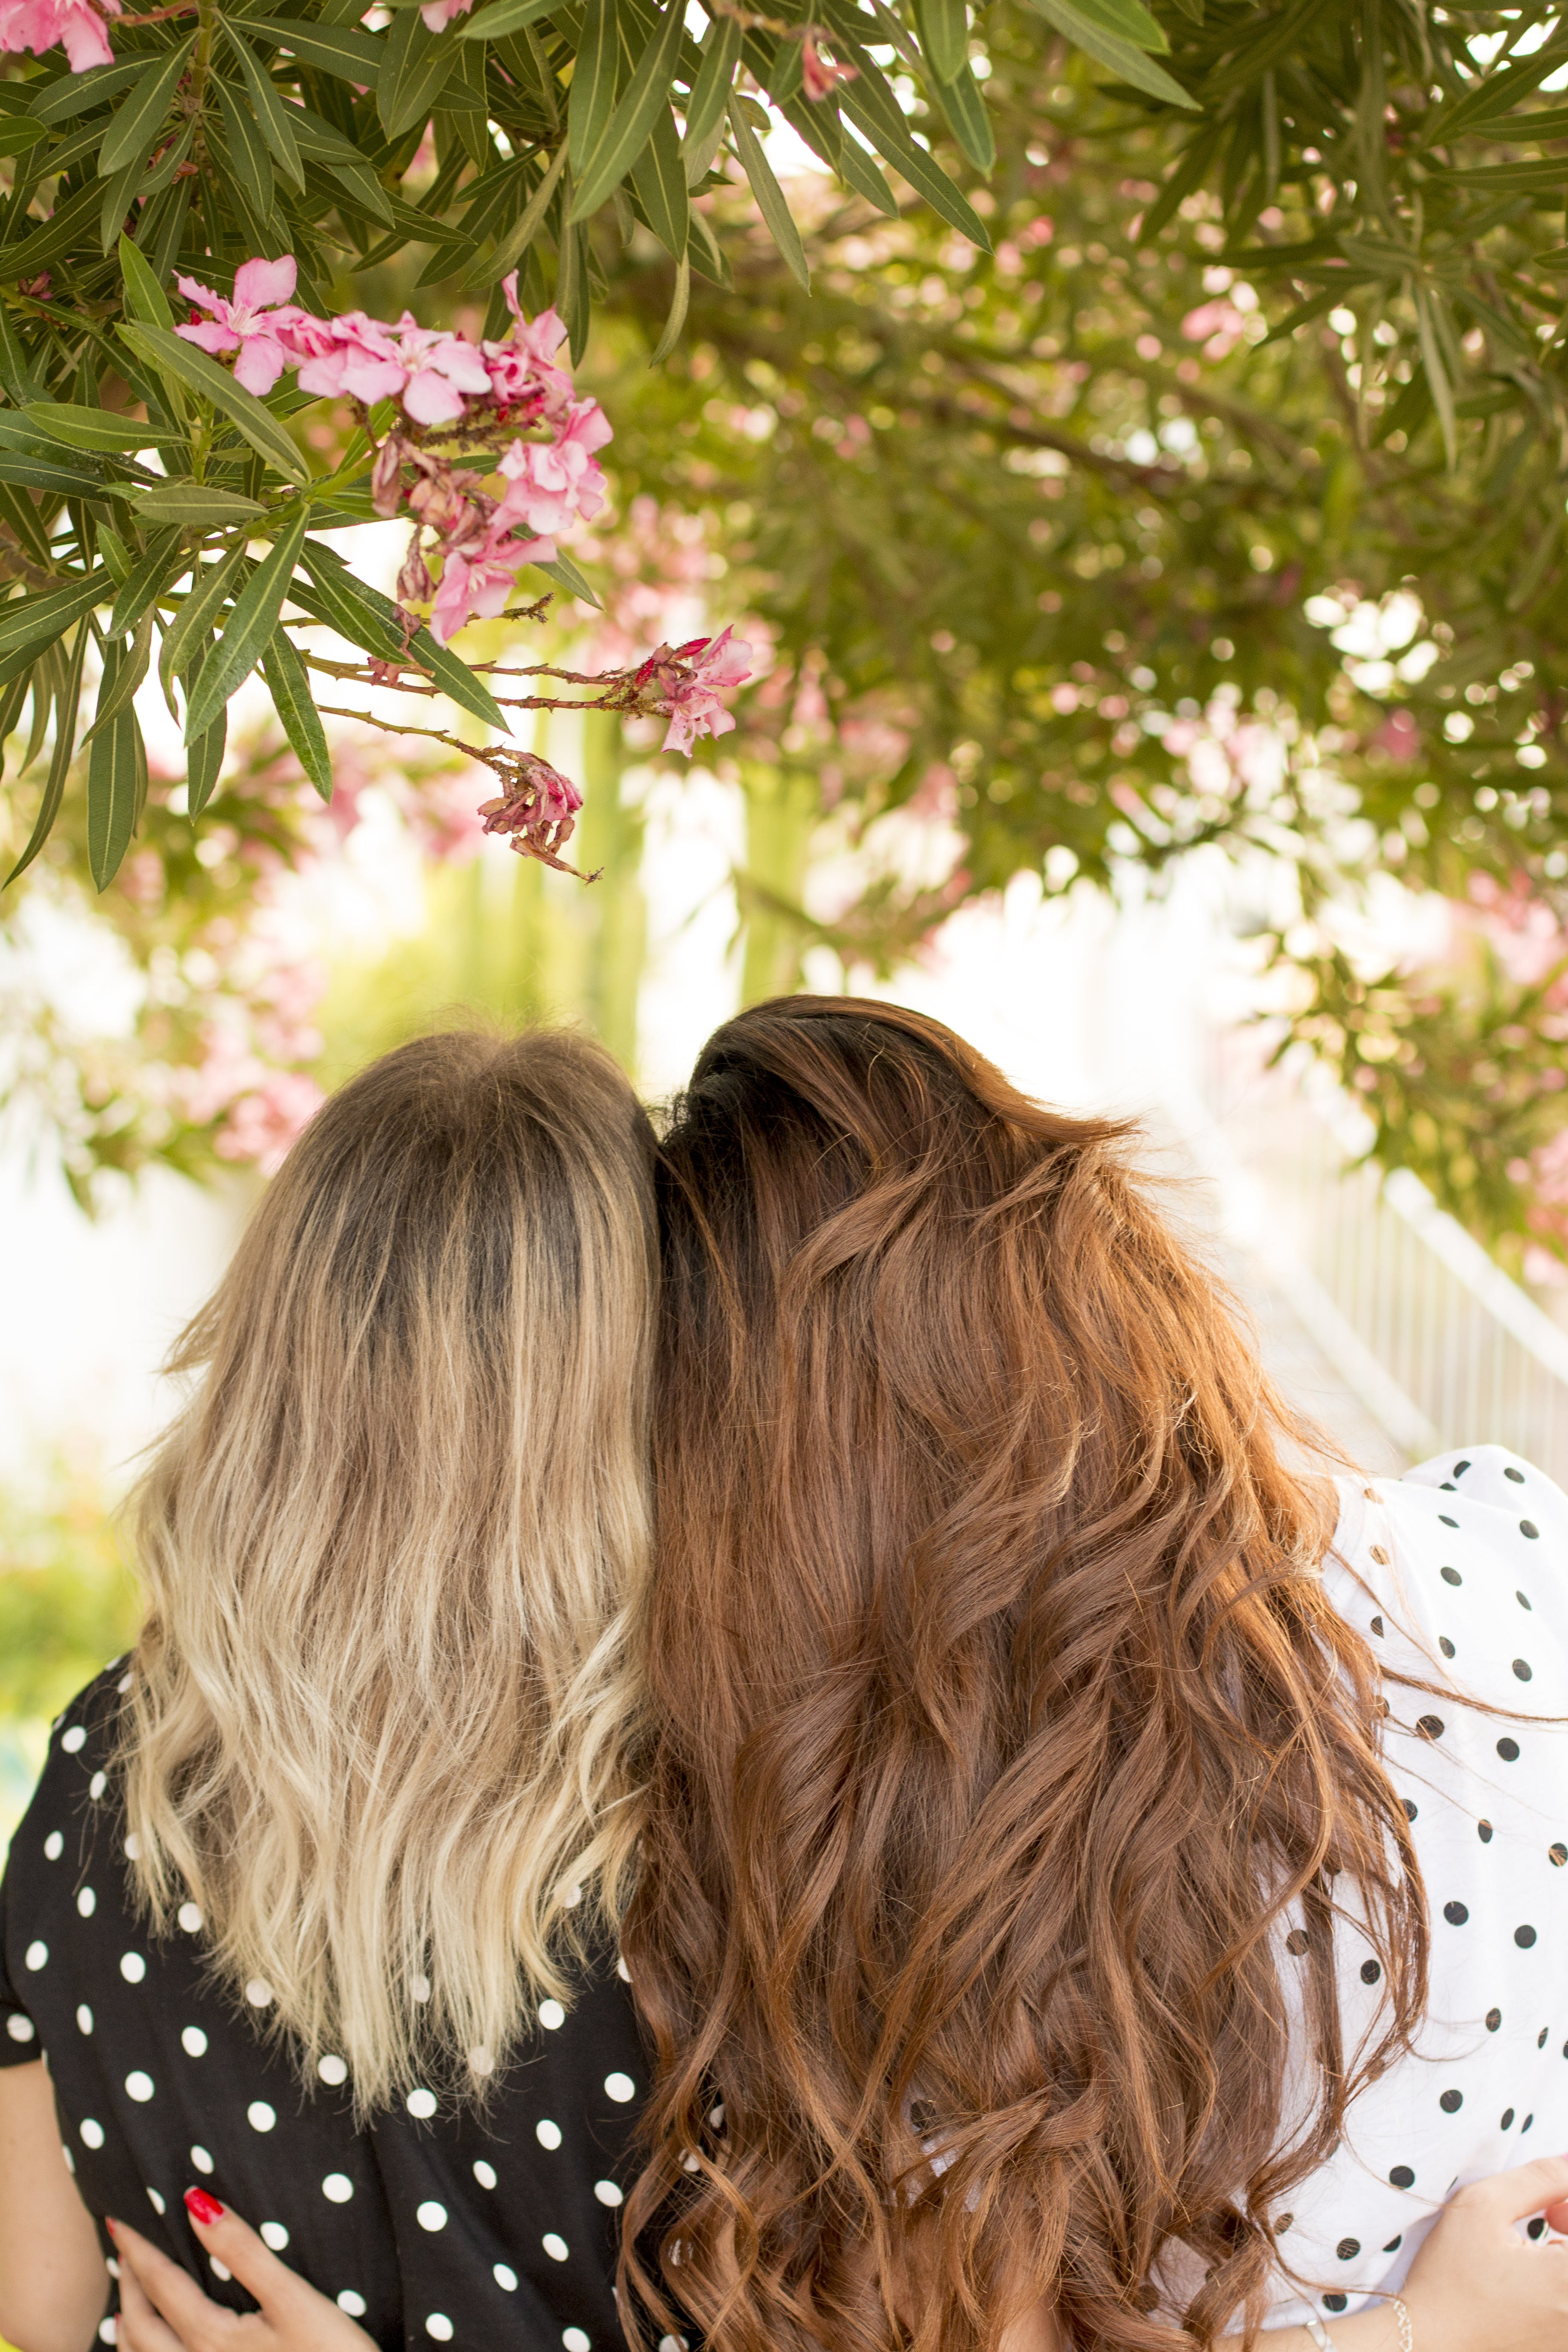 Two Women Leaning Side by Side Under Pink Petaled-flowering Plant